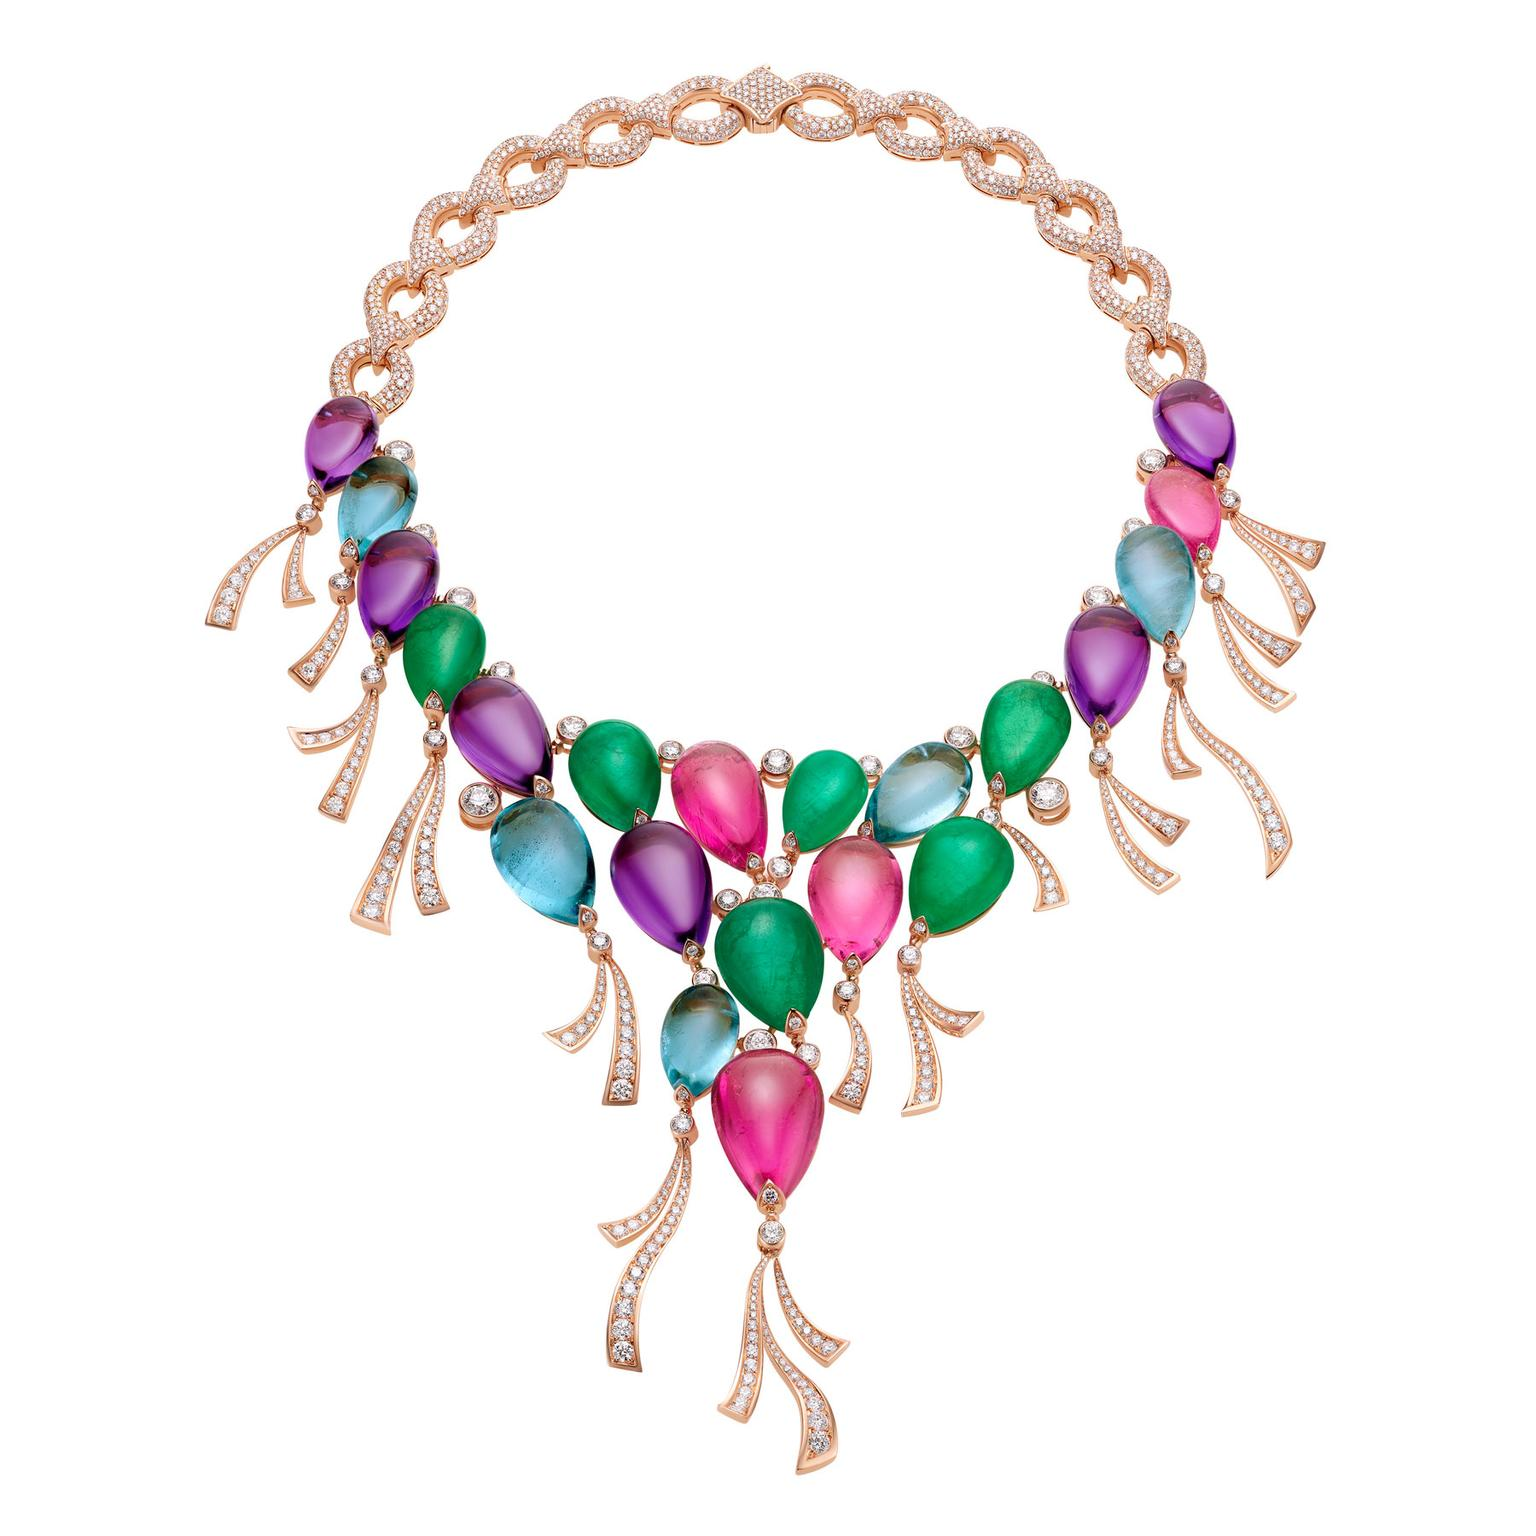 Bulgari Festa Palloncini balloon necklace